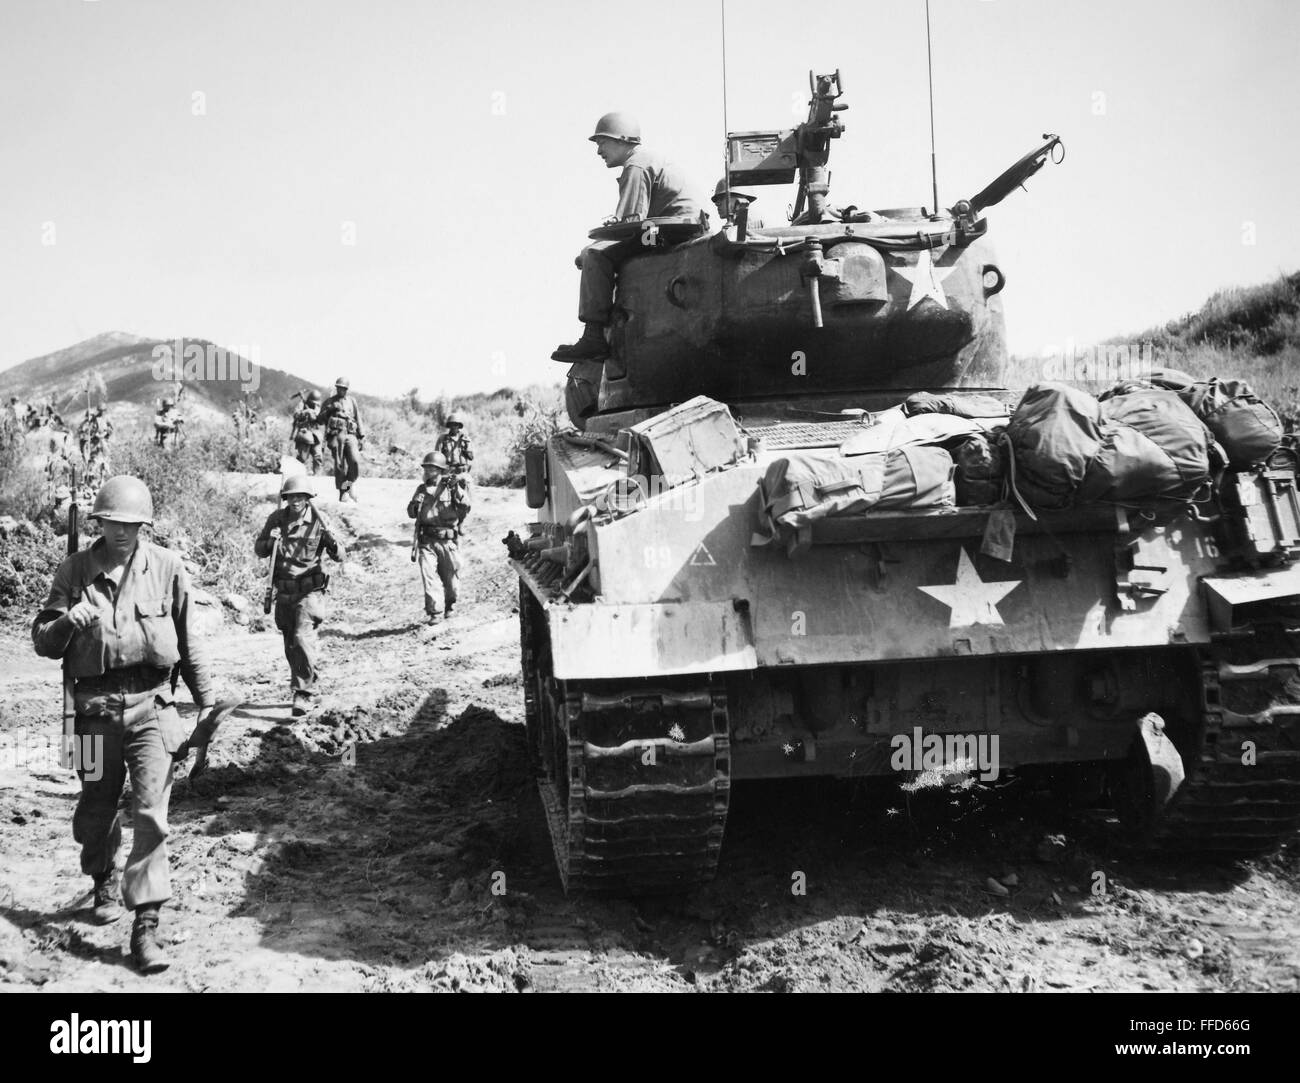 KOREAN WAR: ADVANCING. /nU.S. Army infantrymen, carrying rifles and shovels, and a tank advance toward Communist Stock Photo